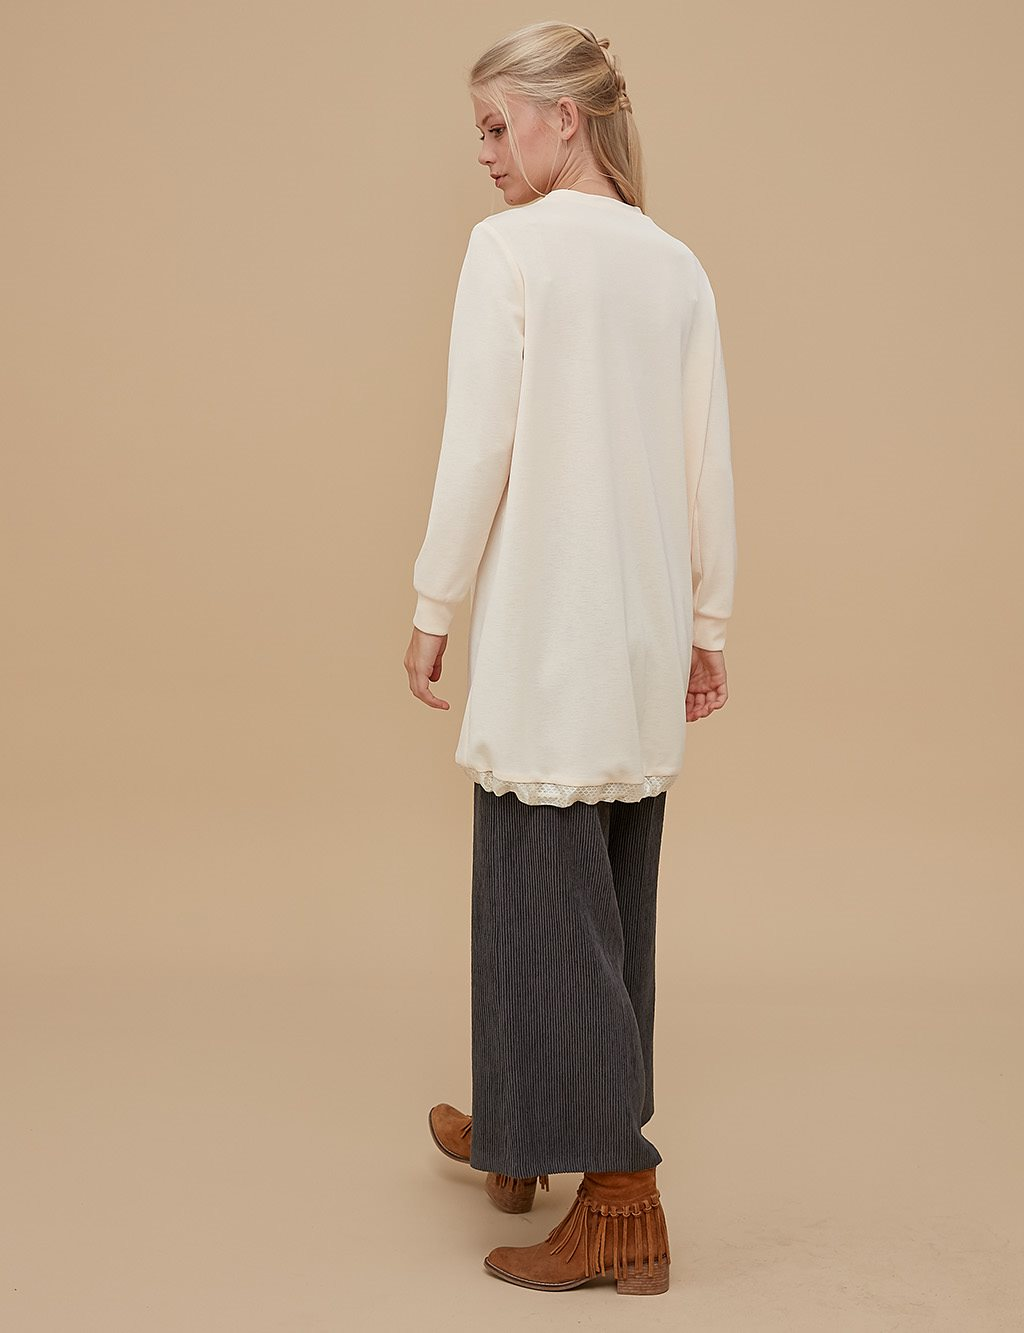 Ruched Tunic With Pocket Detail A9 21247 Cream